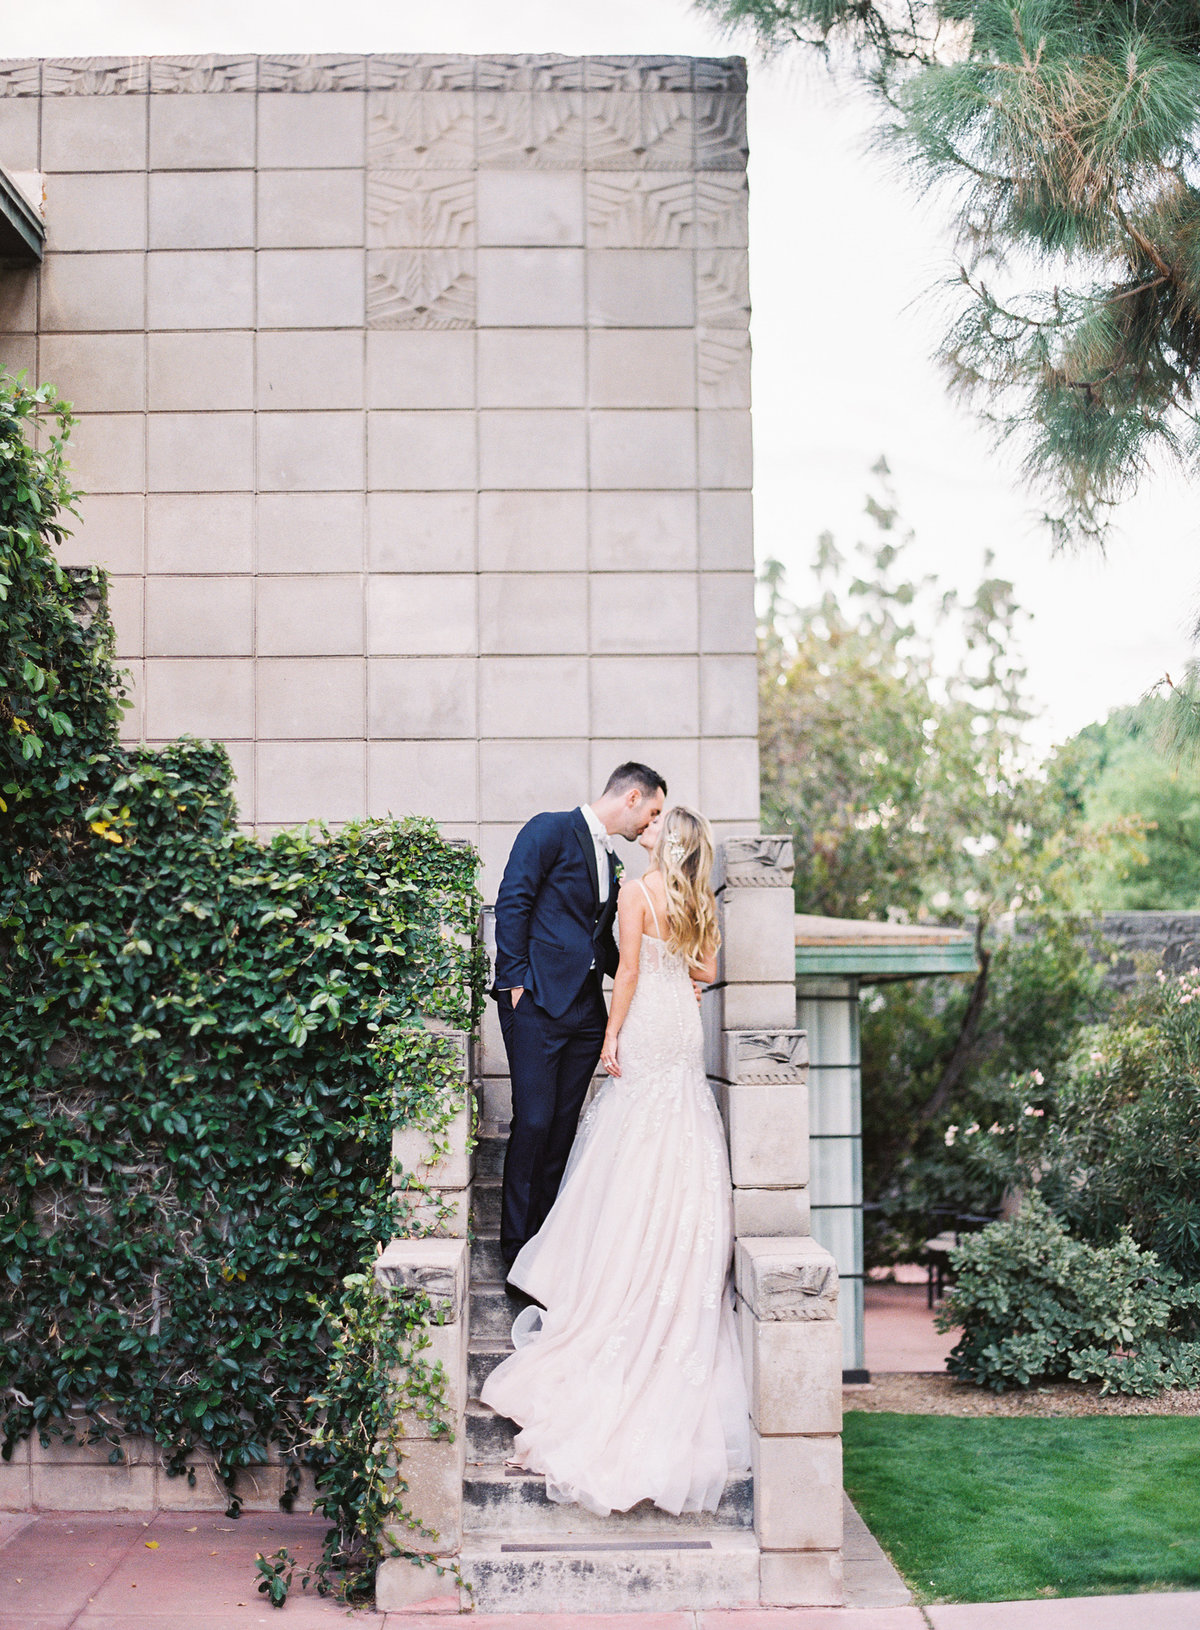 Arizona Biltmore Wedding - Mary Claire Photography-19